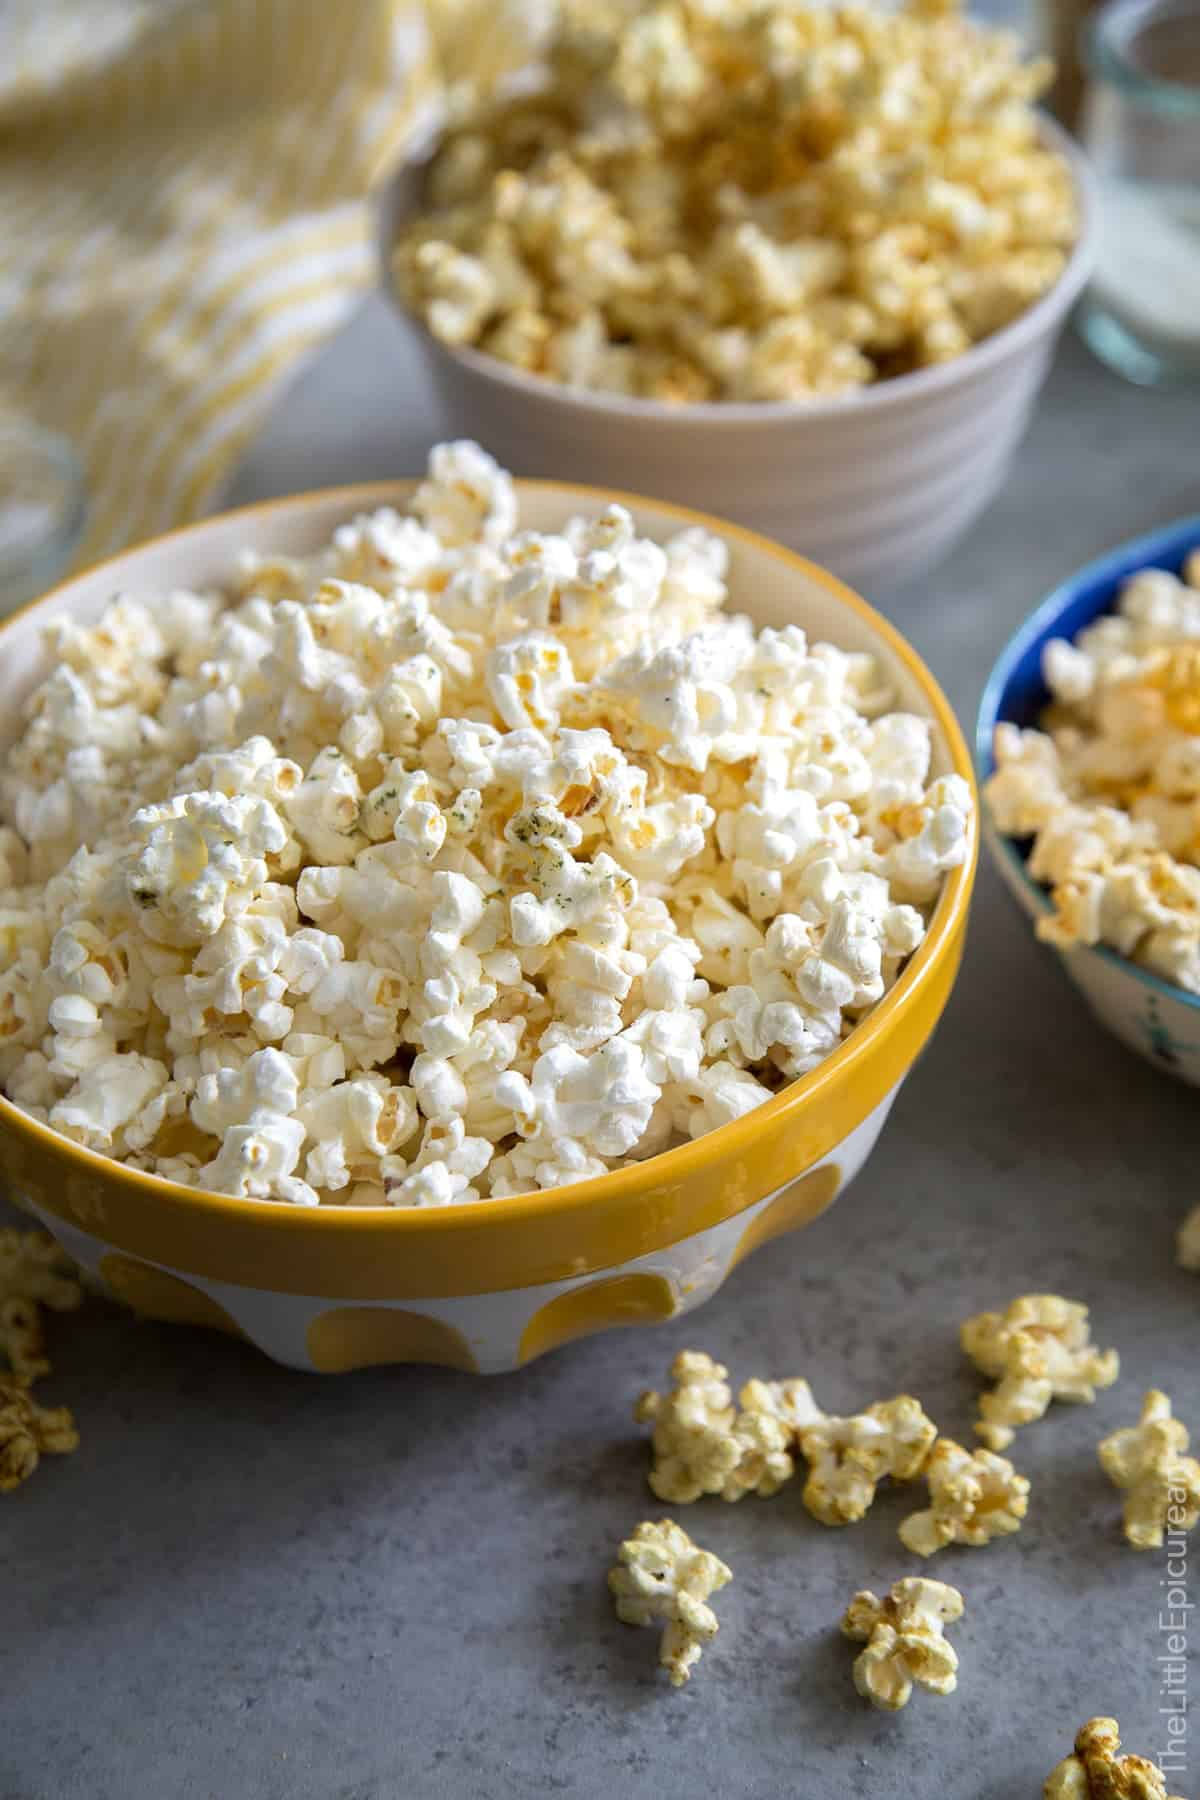 Homemade Microwave Popcorn (with flavor mix-ins)